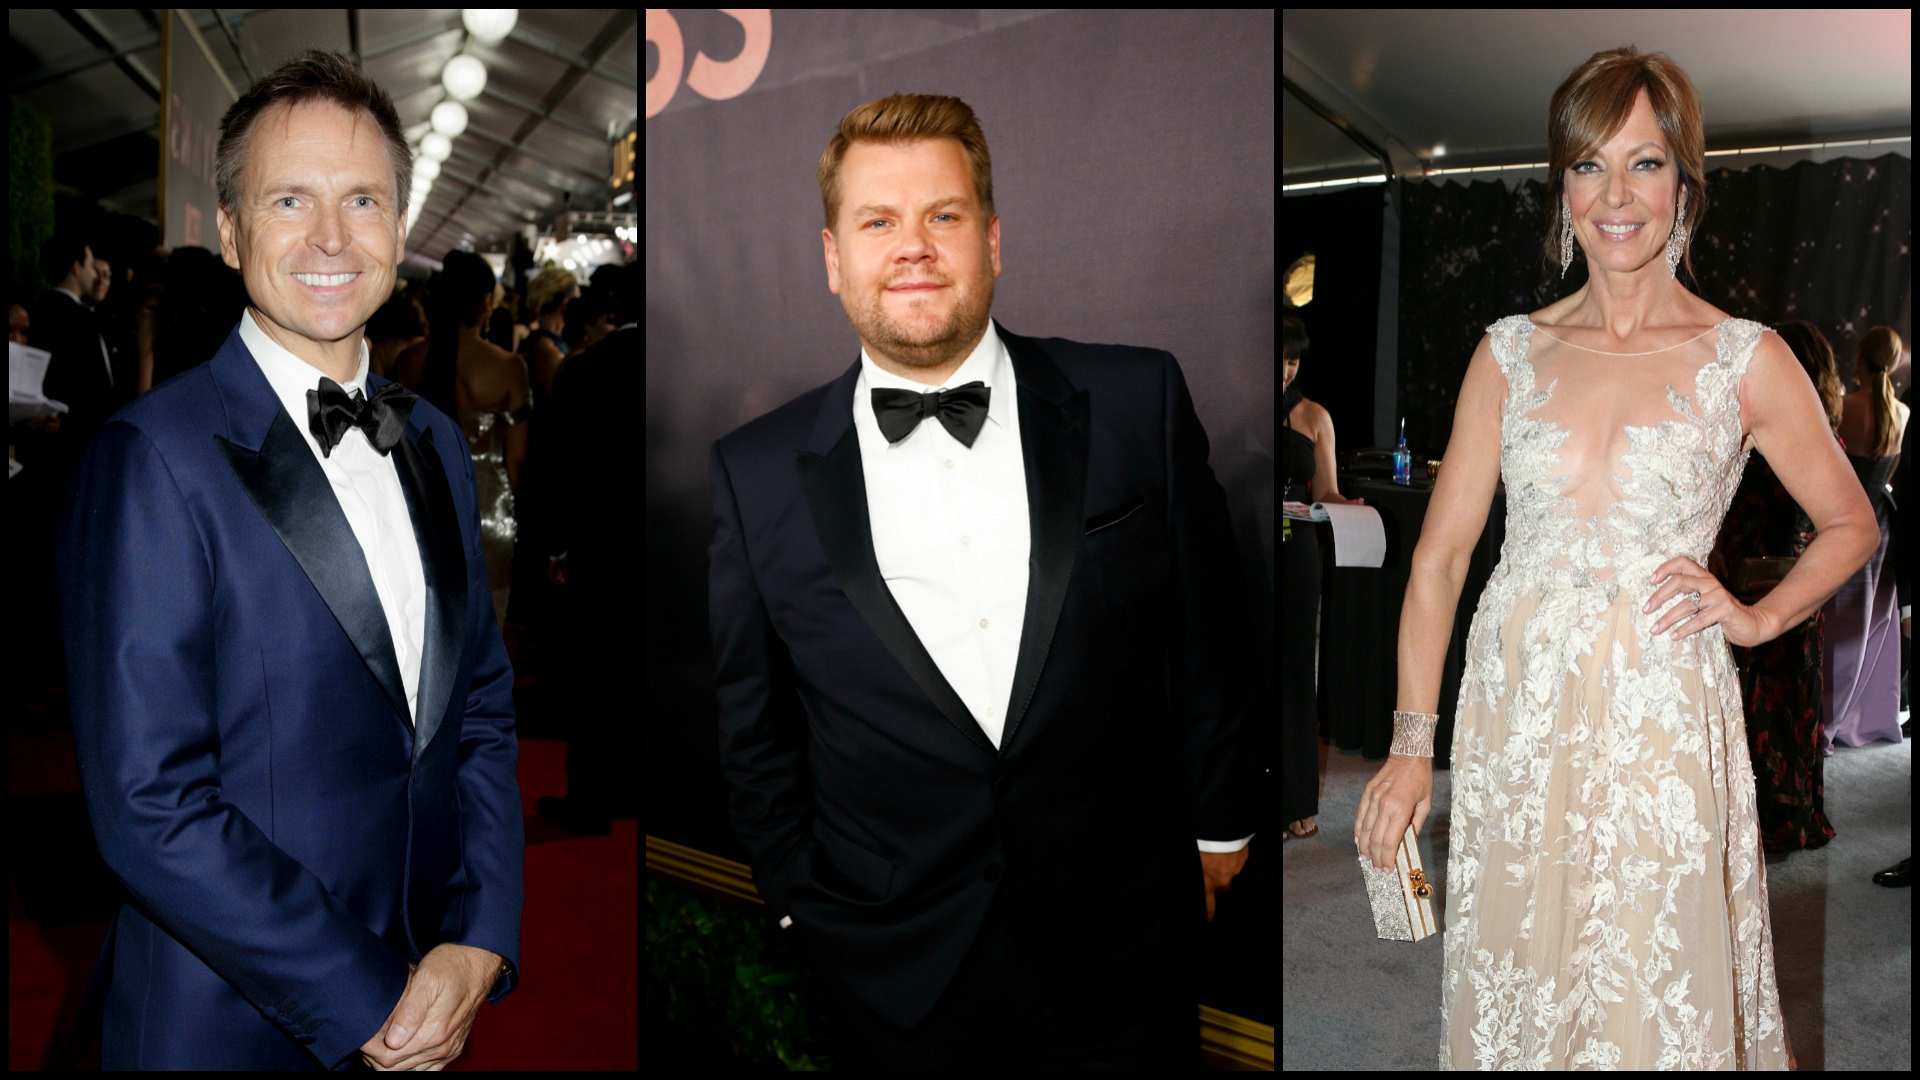 Phil Keoghan from The Amazing Race, James Corden from The Late Late Show, and Allison Janney from Mom